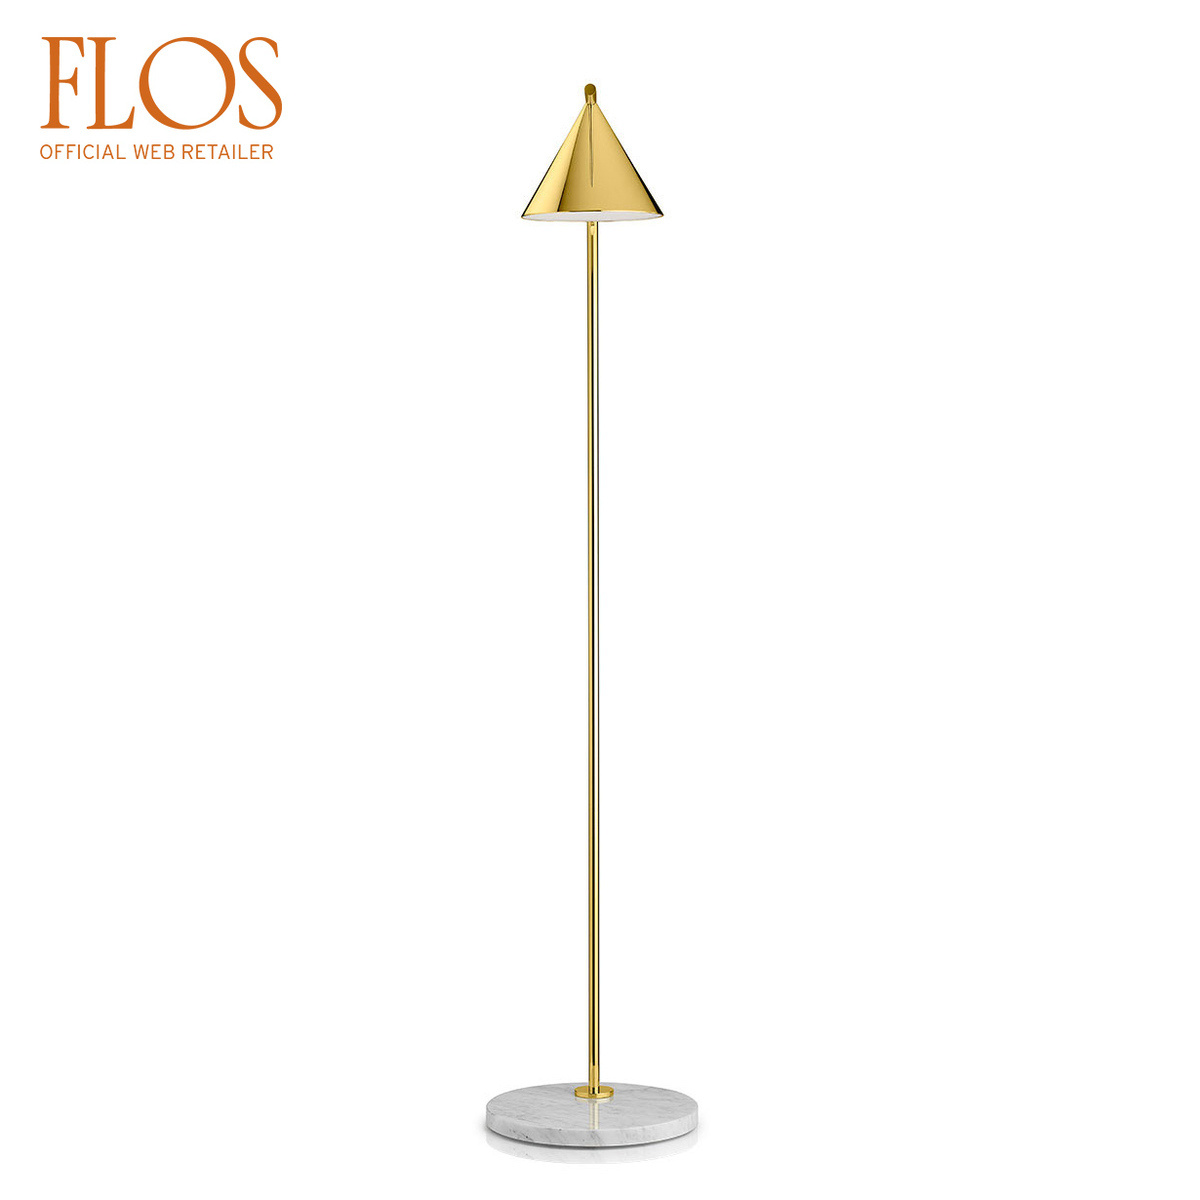 Lampada da terra Captain Flint by Flos | LOVEThESIGN